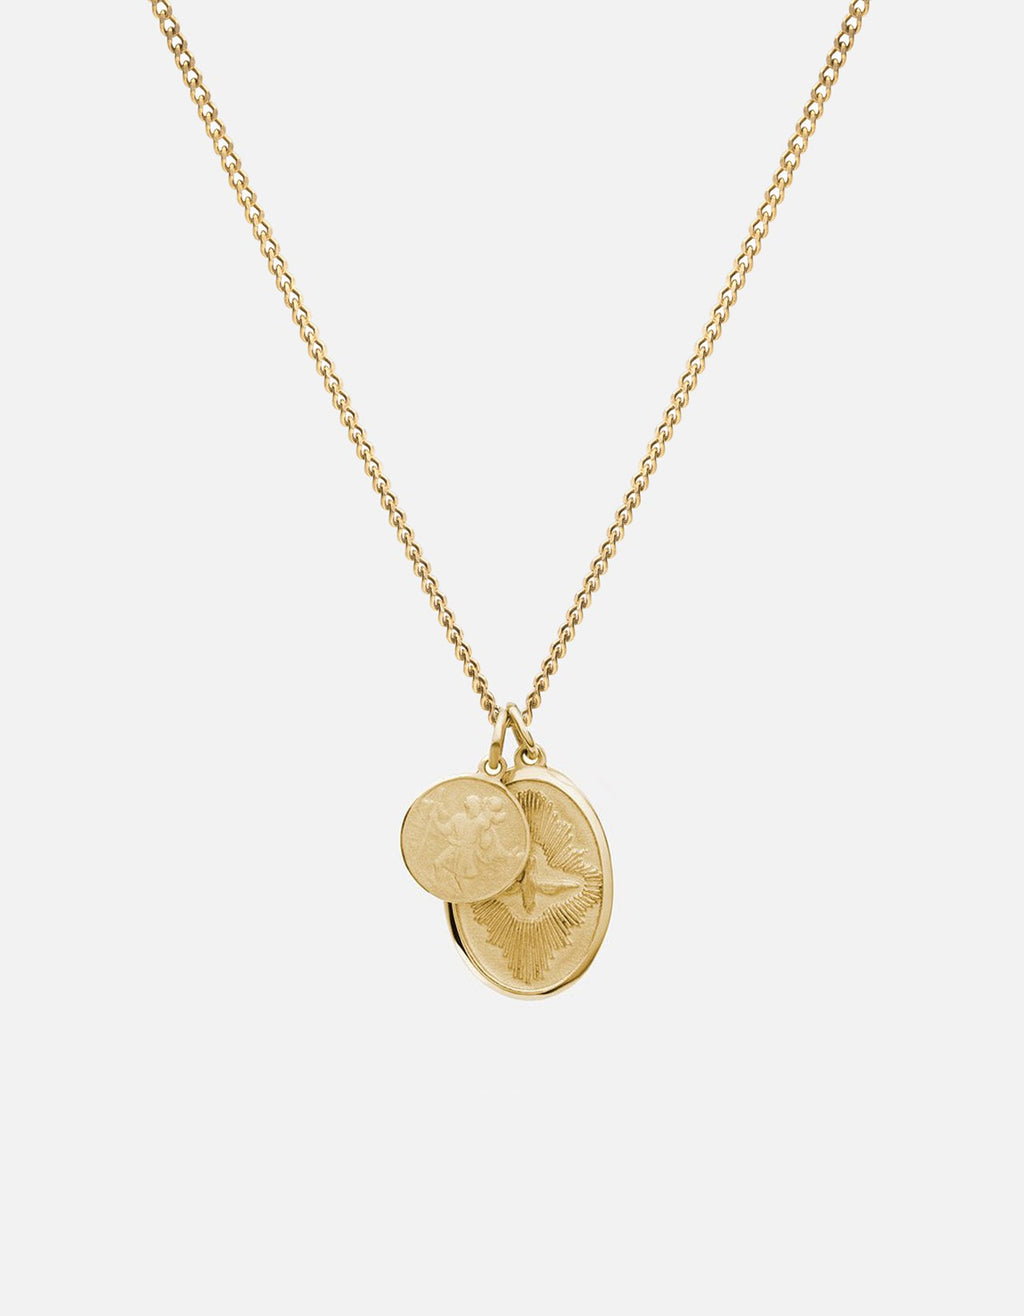 Miansai Mini Dove Pendant Necklace, 14k Yellow Gold, Brushed, 24in.